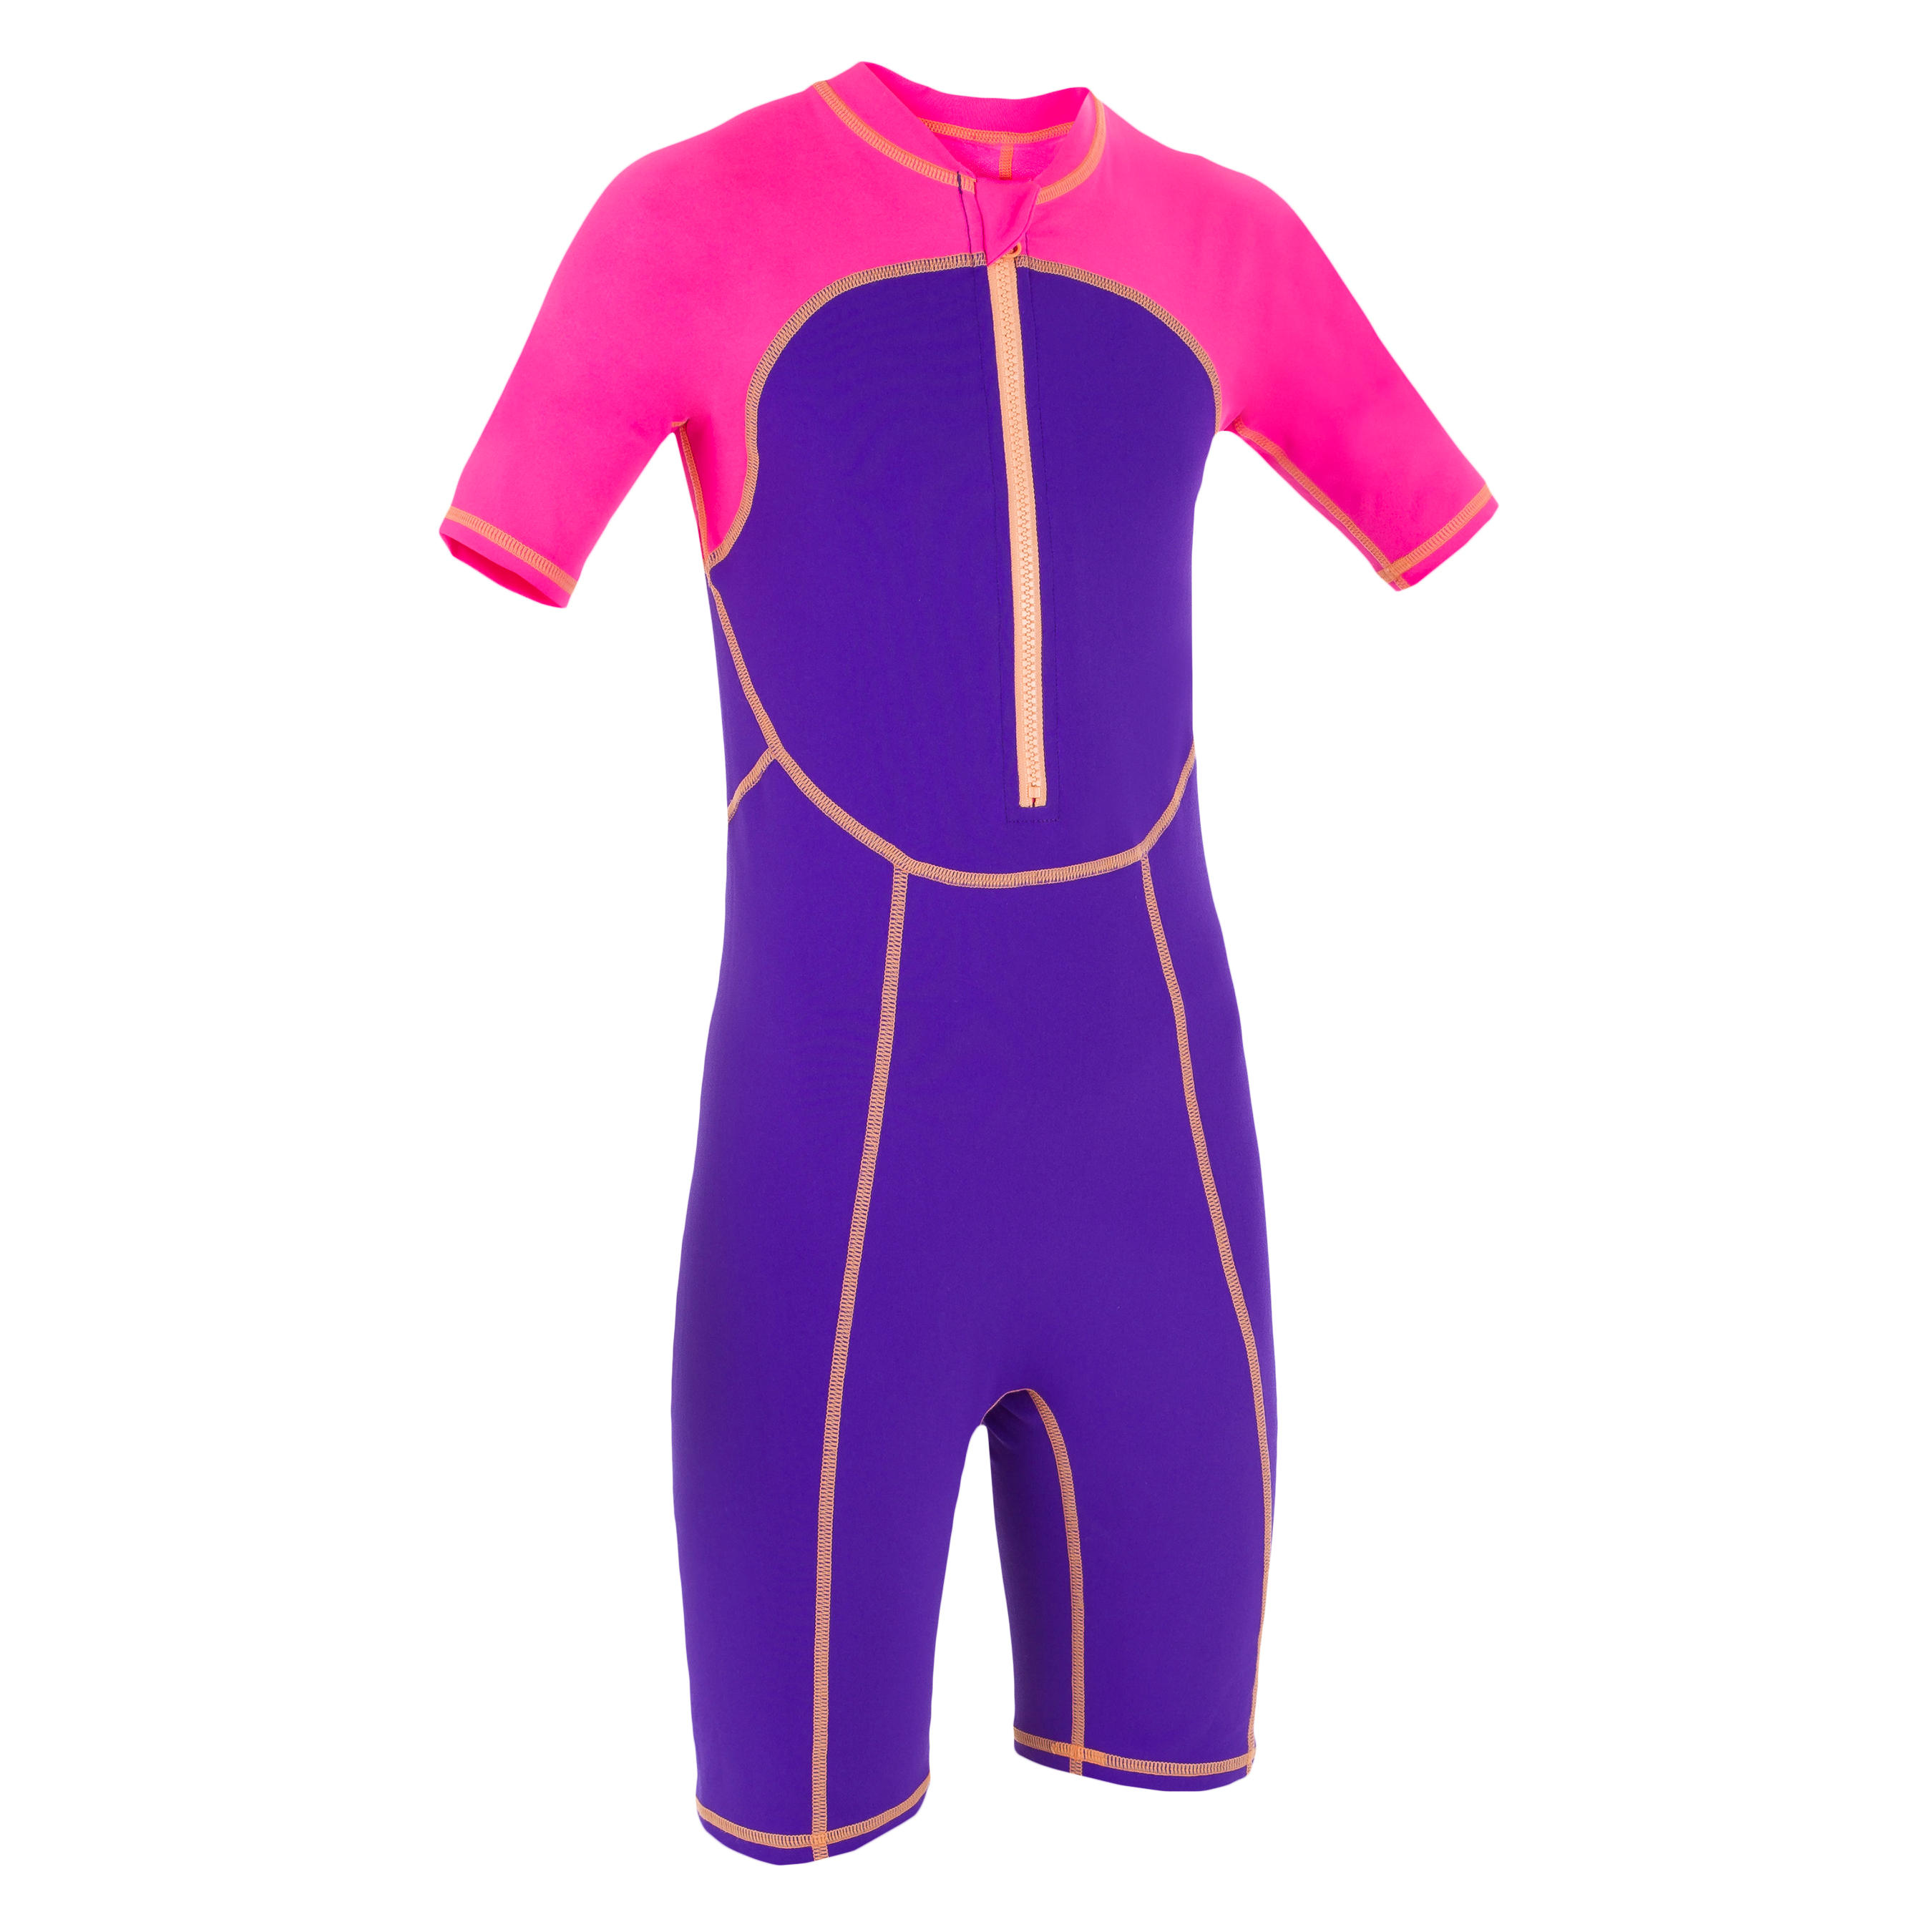 Girl swimming costume shorty swim- purple pink